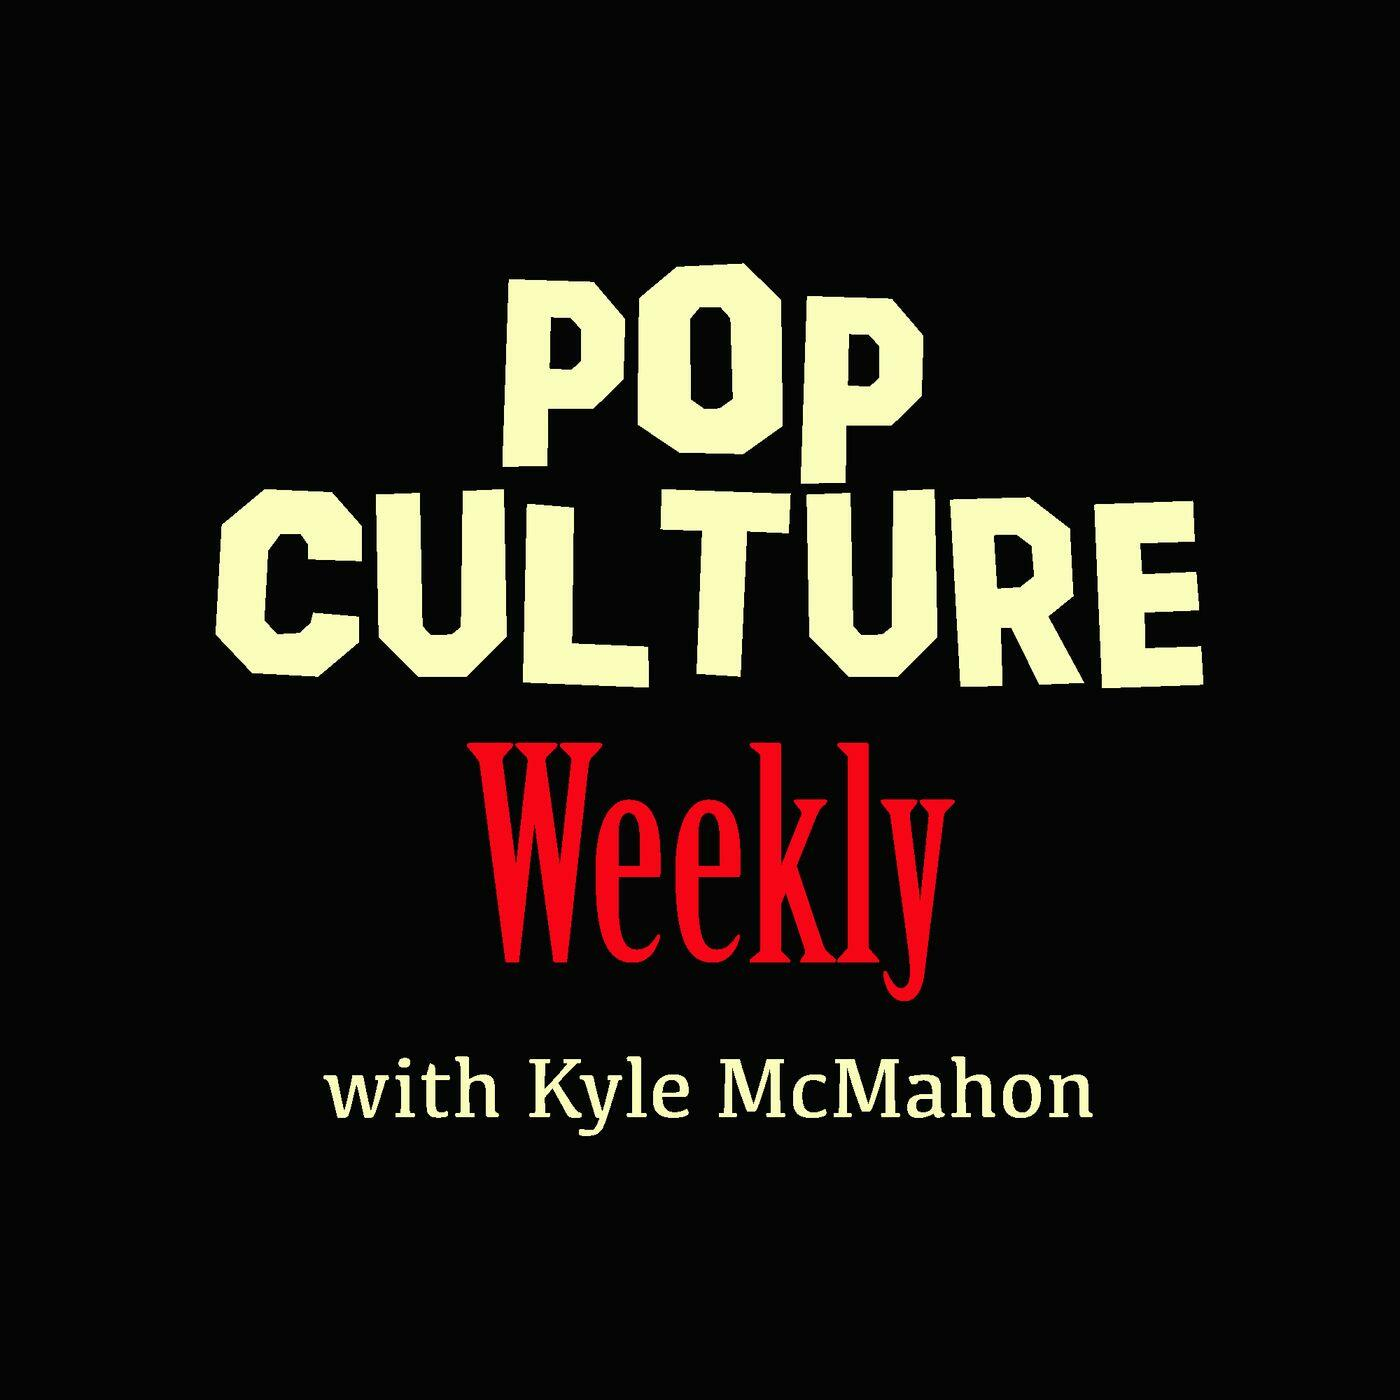 Listen to the Pop Culture Weekly Episode - Lauv talks How I'm Feeling; Mallika Chopra discusses Just Feel on iHeartRadio | iHeartRadio